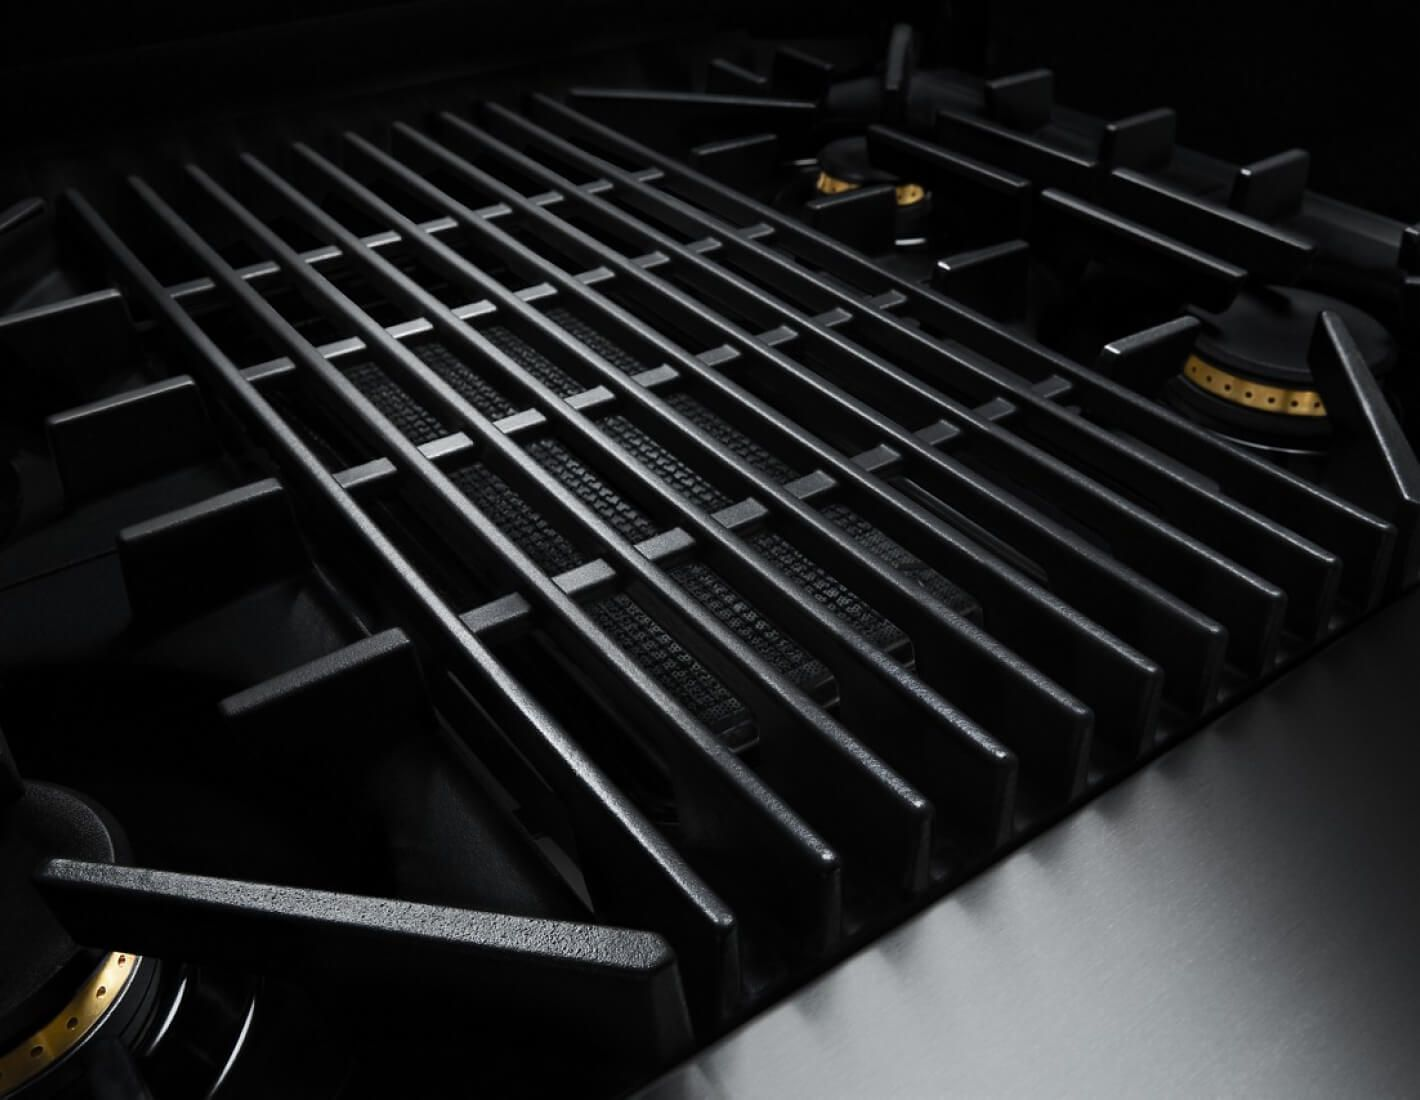 The grill on a RISE™ Design gas rangetop.